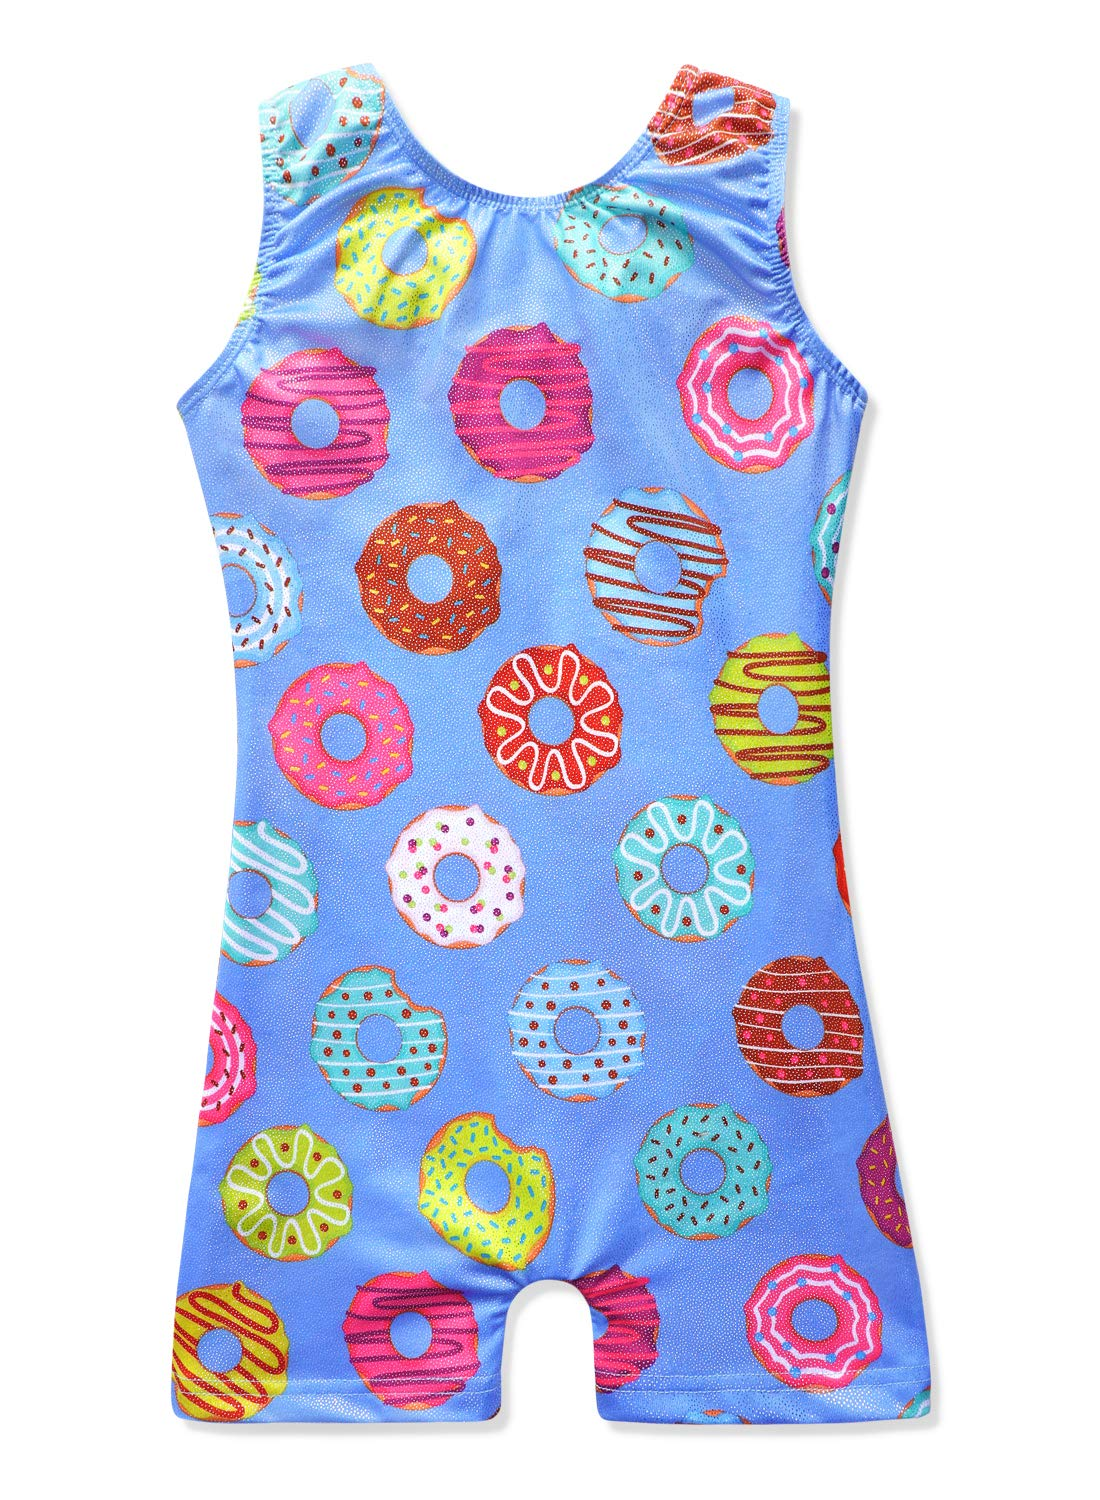 Gymnastics Leotards for Girls 3t 4t doughnut donuts doughnuts donut purple by HOZIY